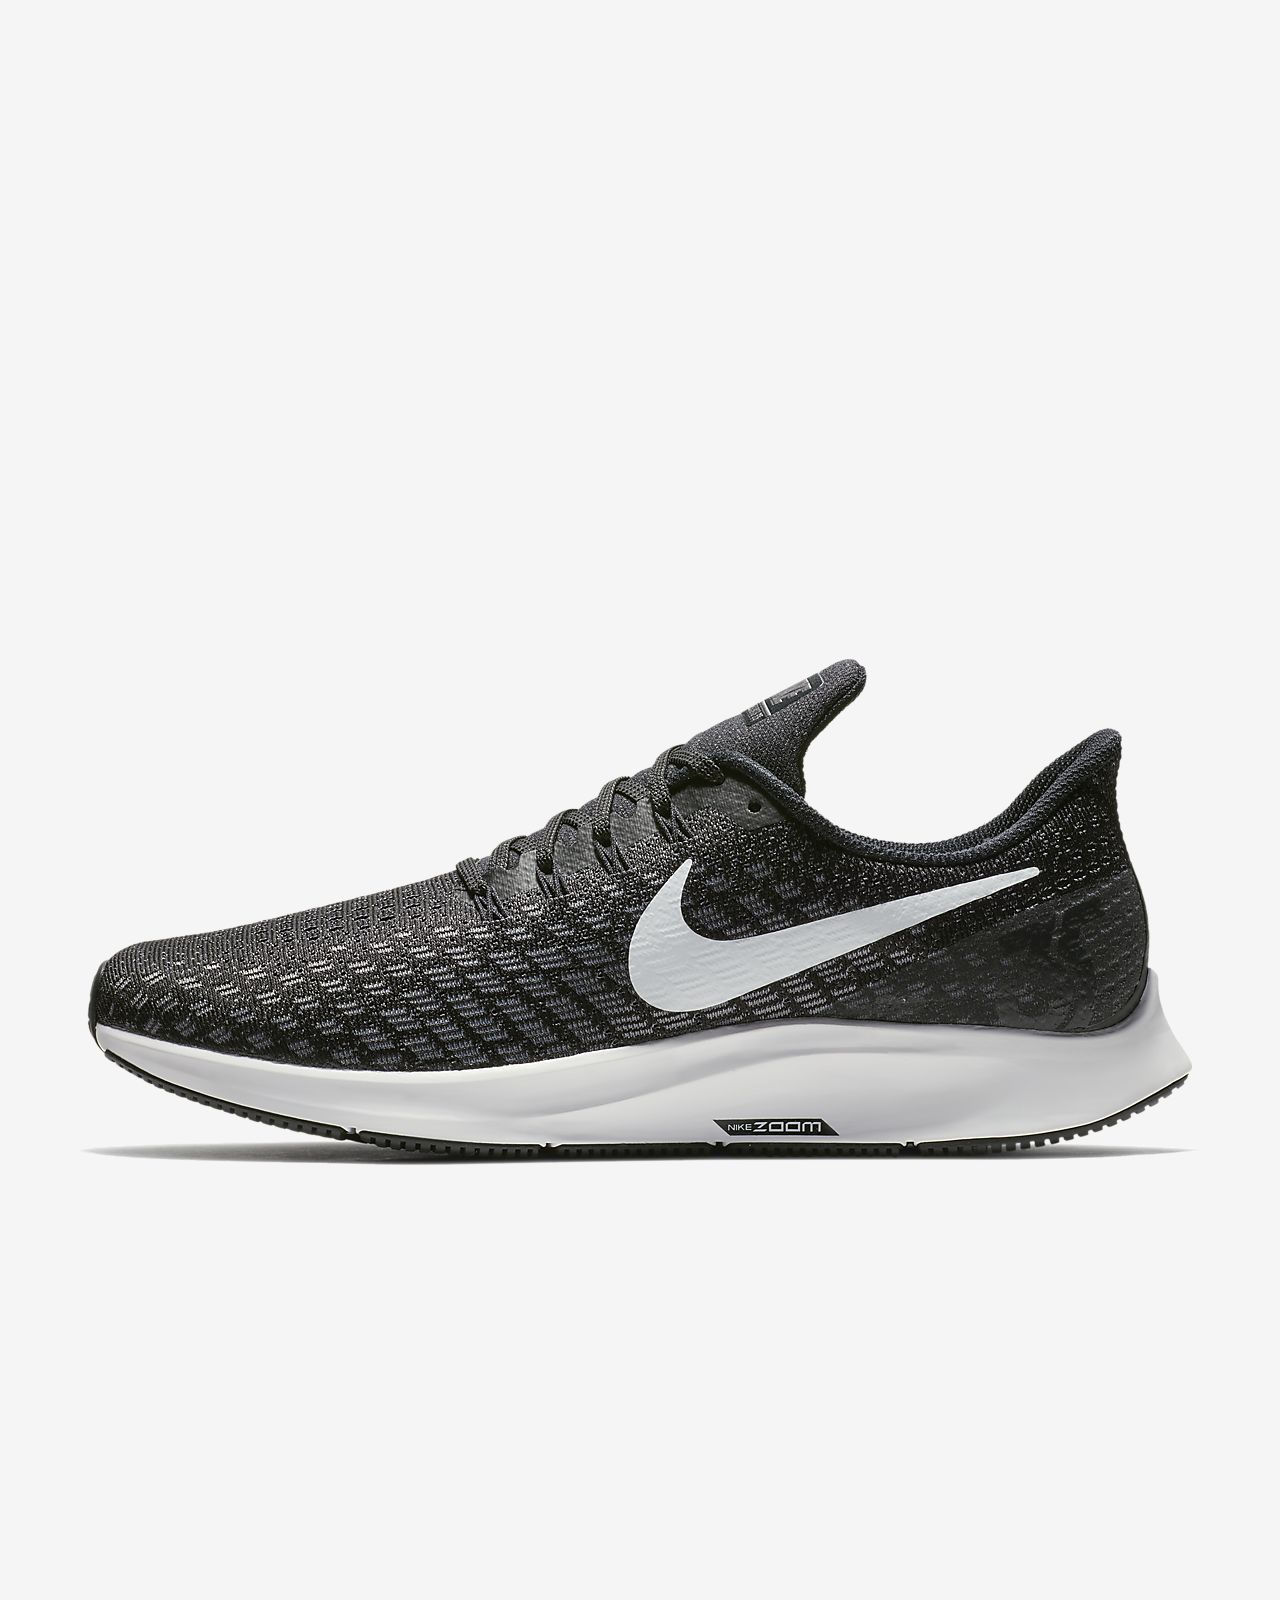 d76cf46547a8a Nike Air Zoom Pegasus 35 Men s Running Shoe. Nike.com GB